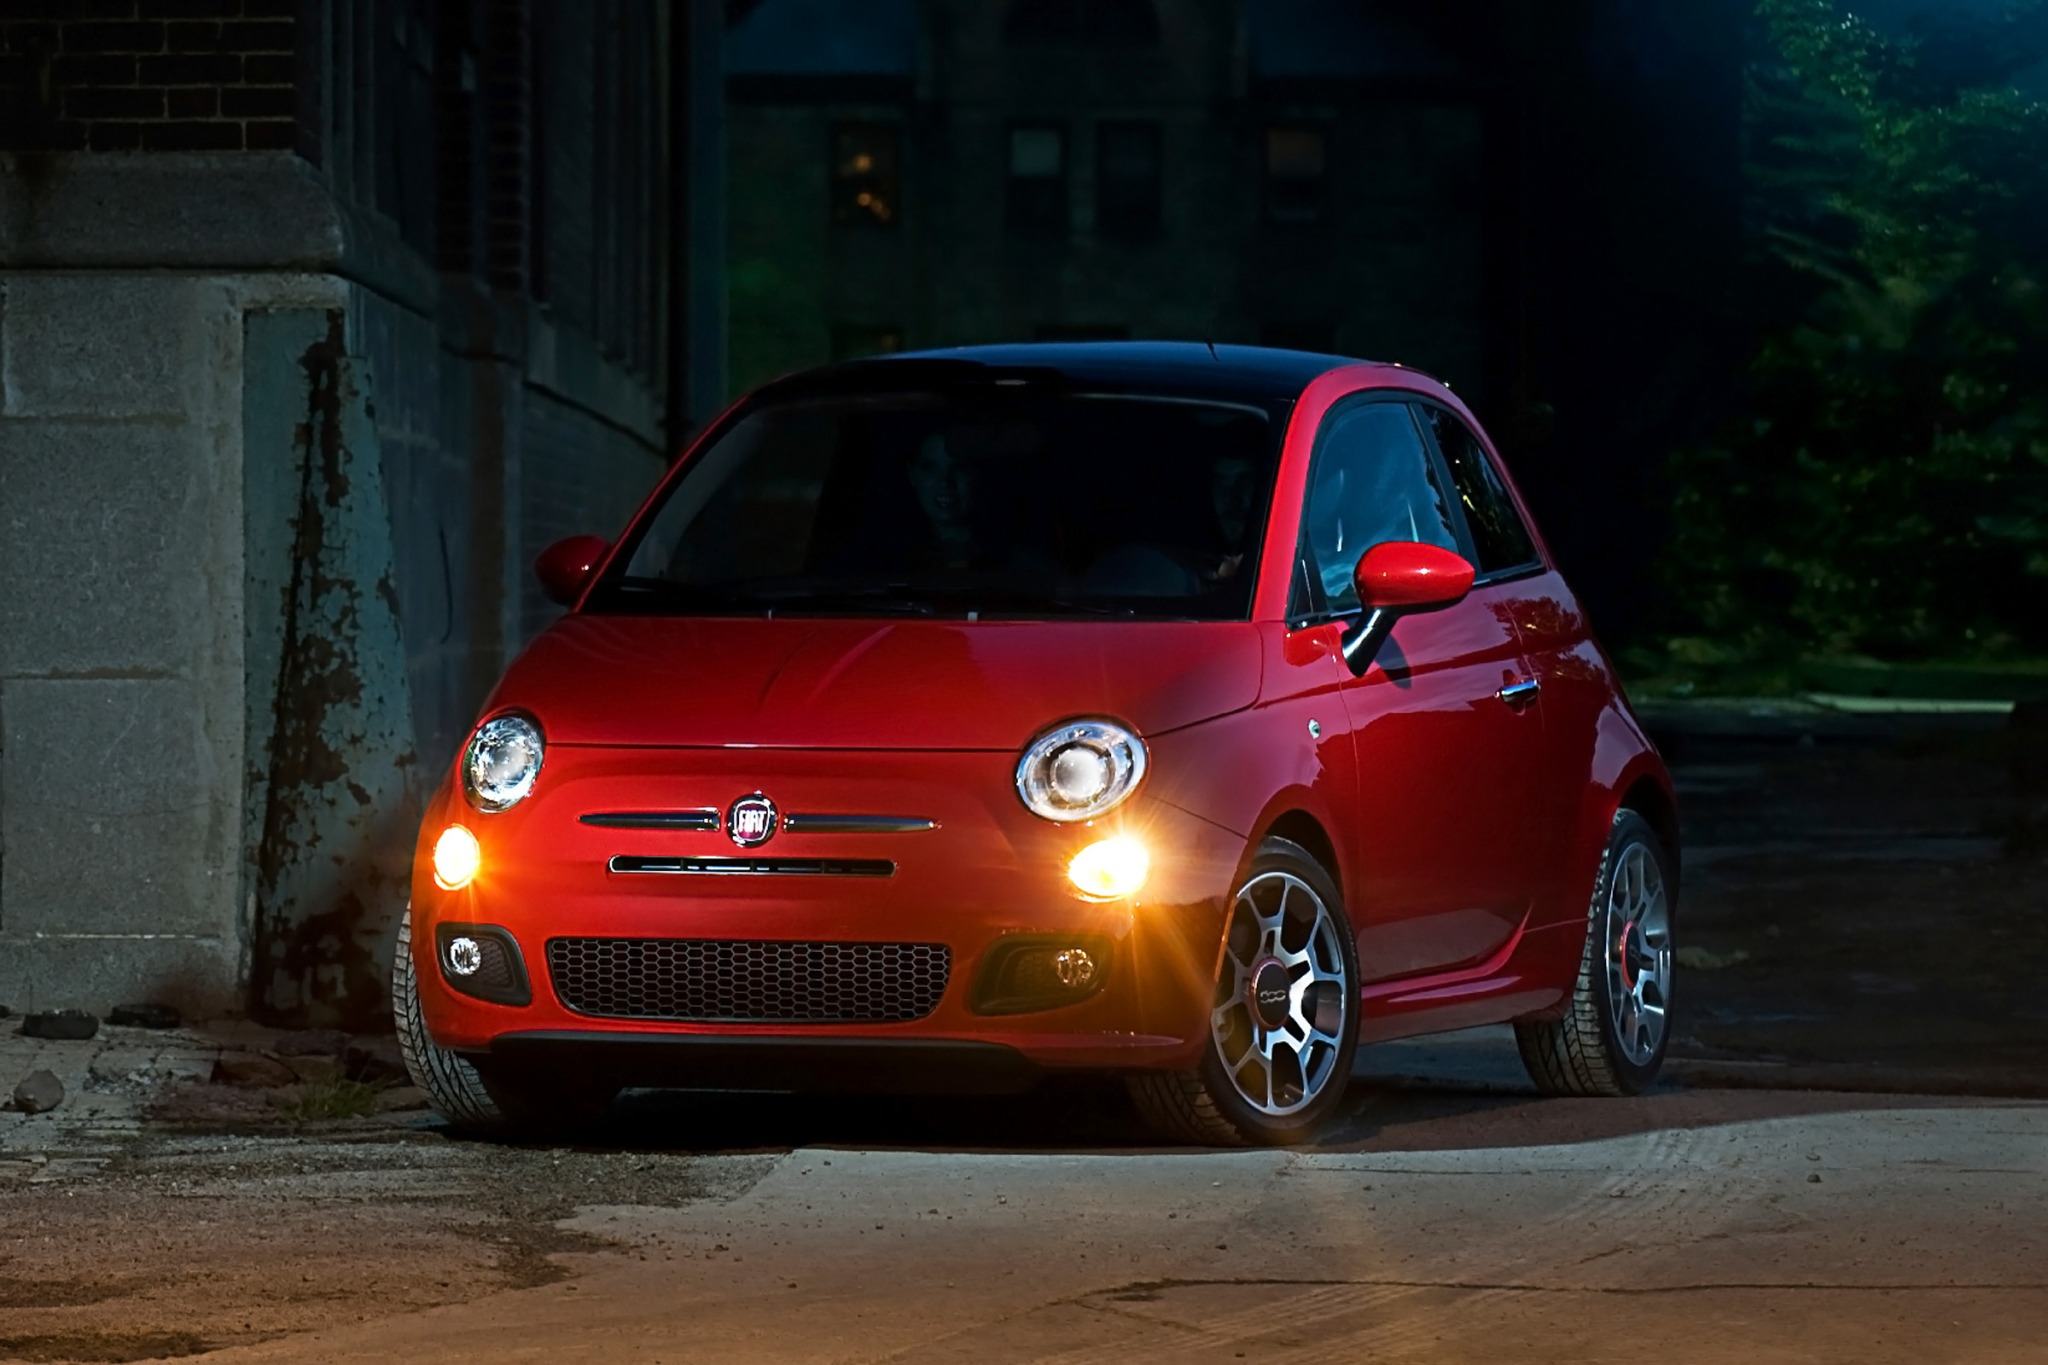 Fiat 2013 500 Hottest Hatchback designed for car enthusiasts #7